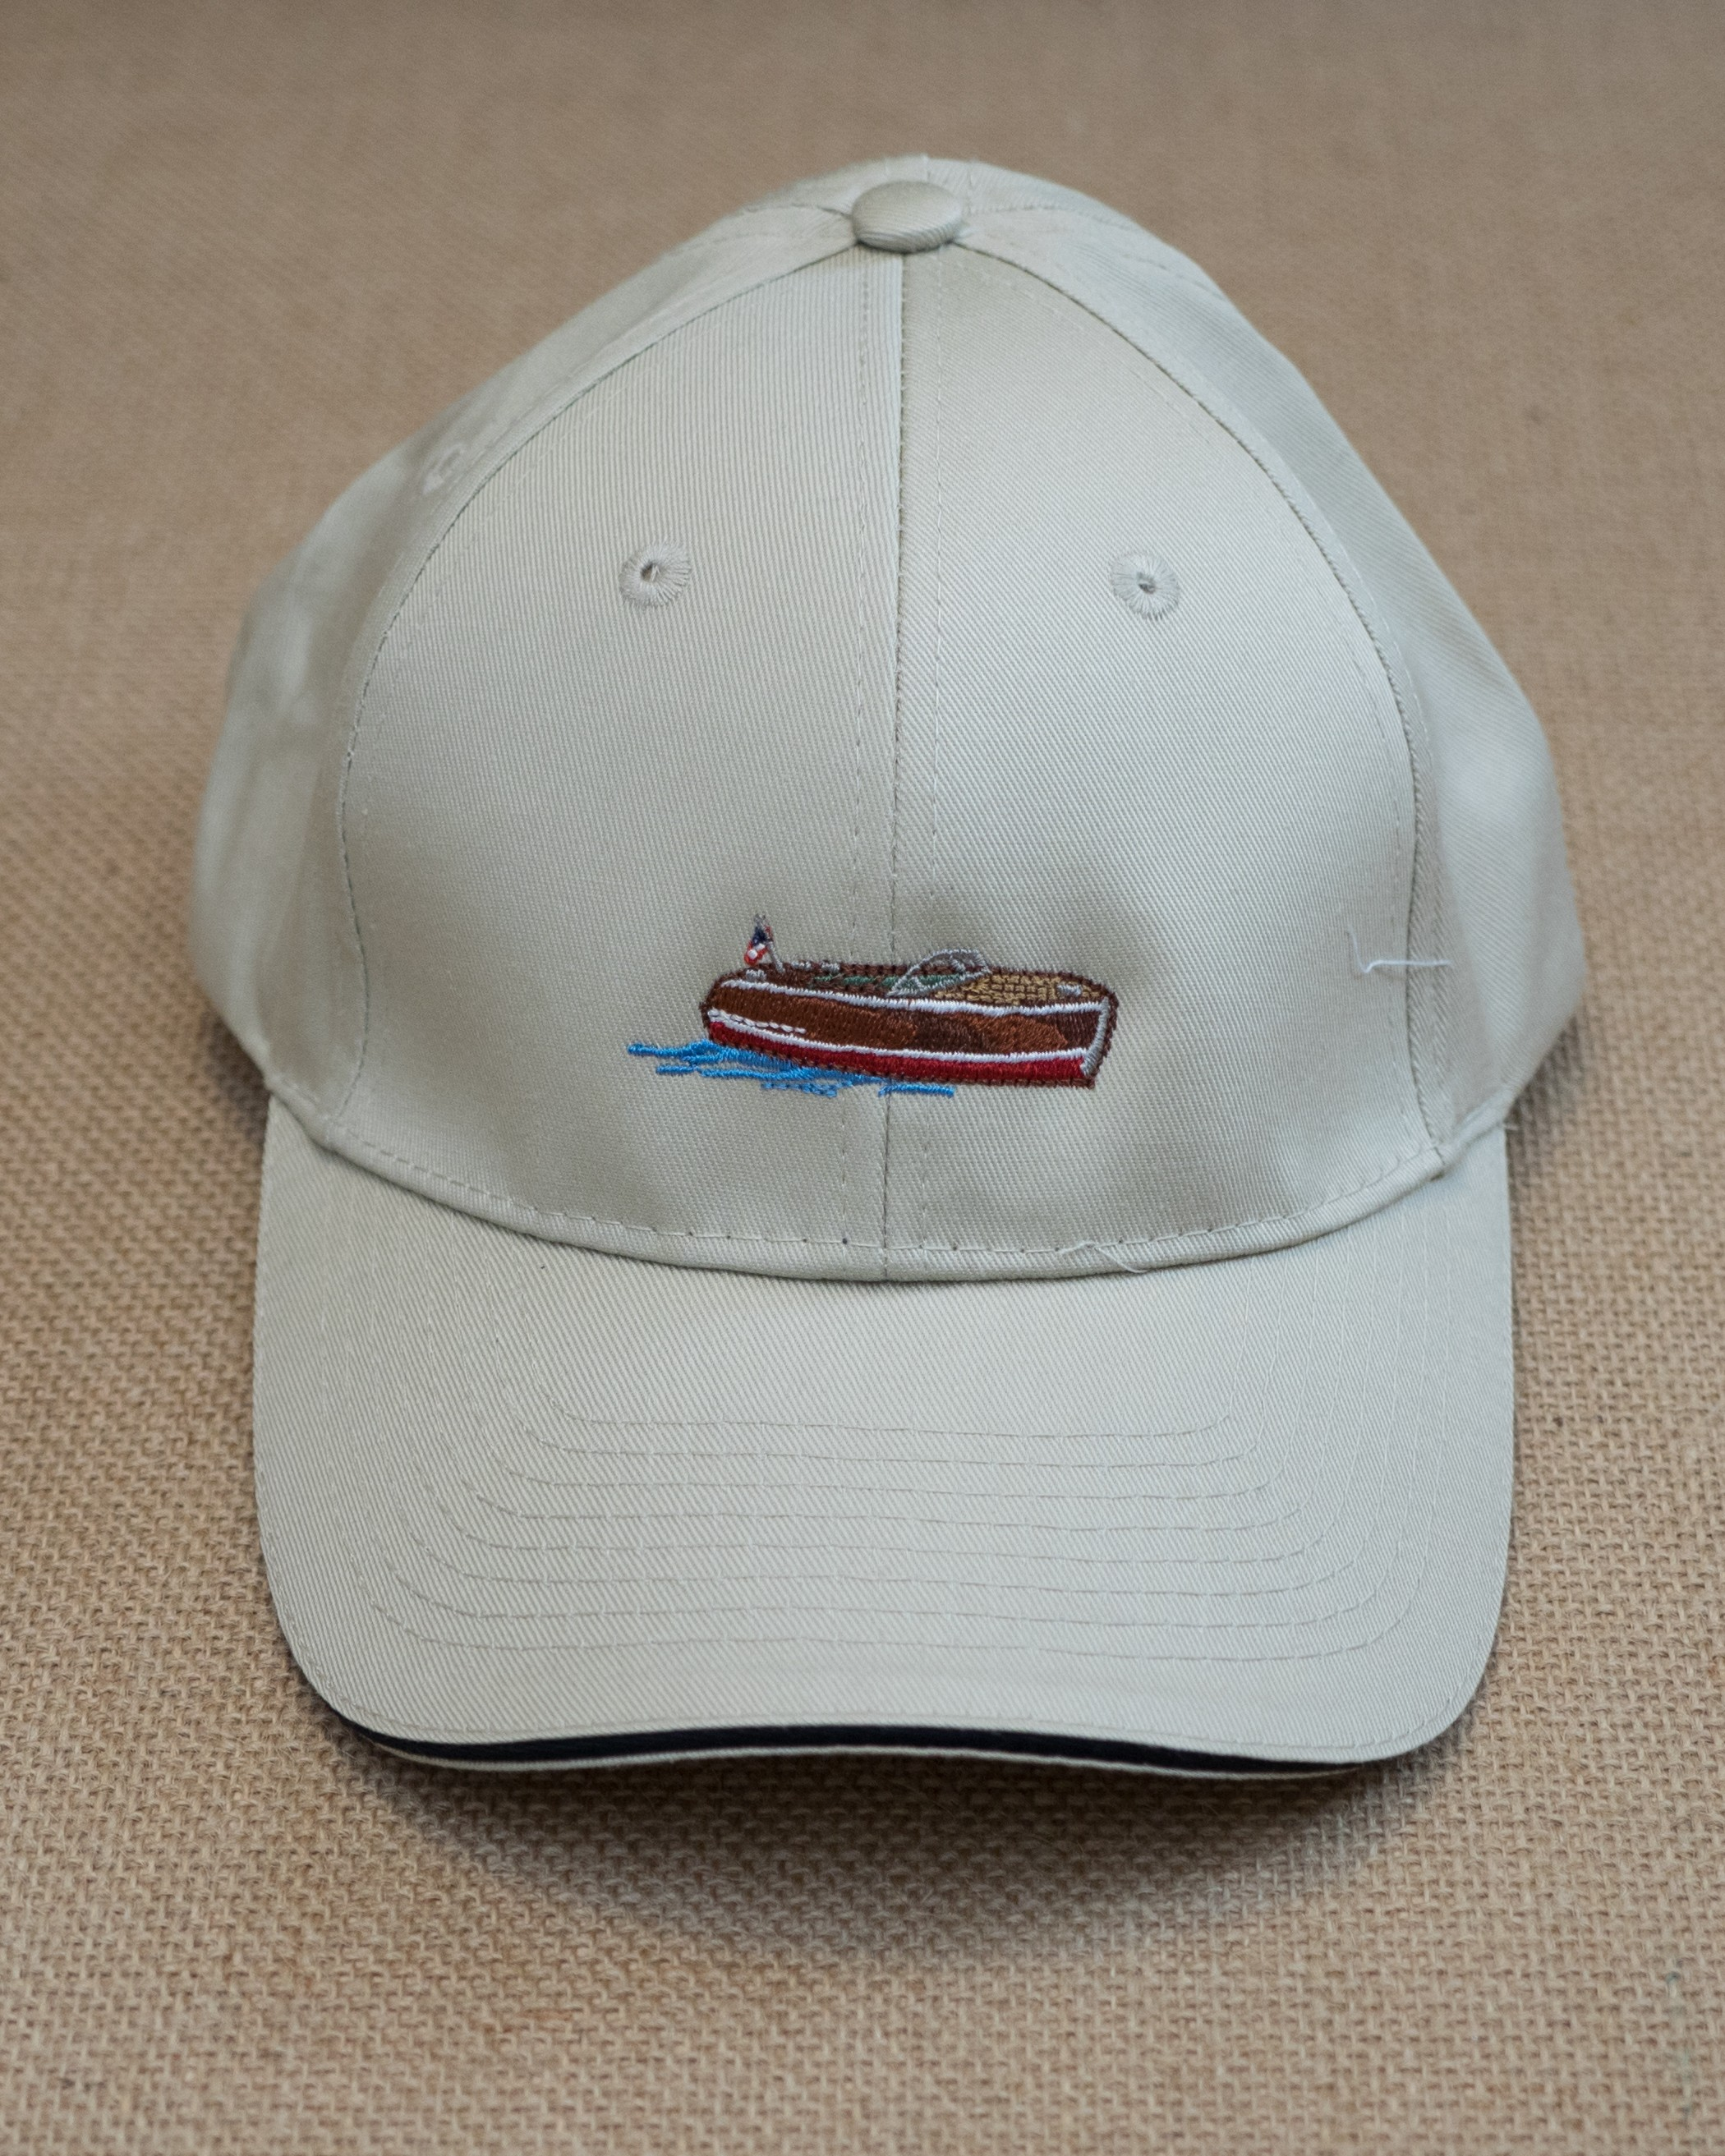 Stone woodyboat embroidered cap